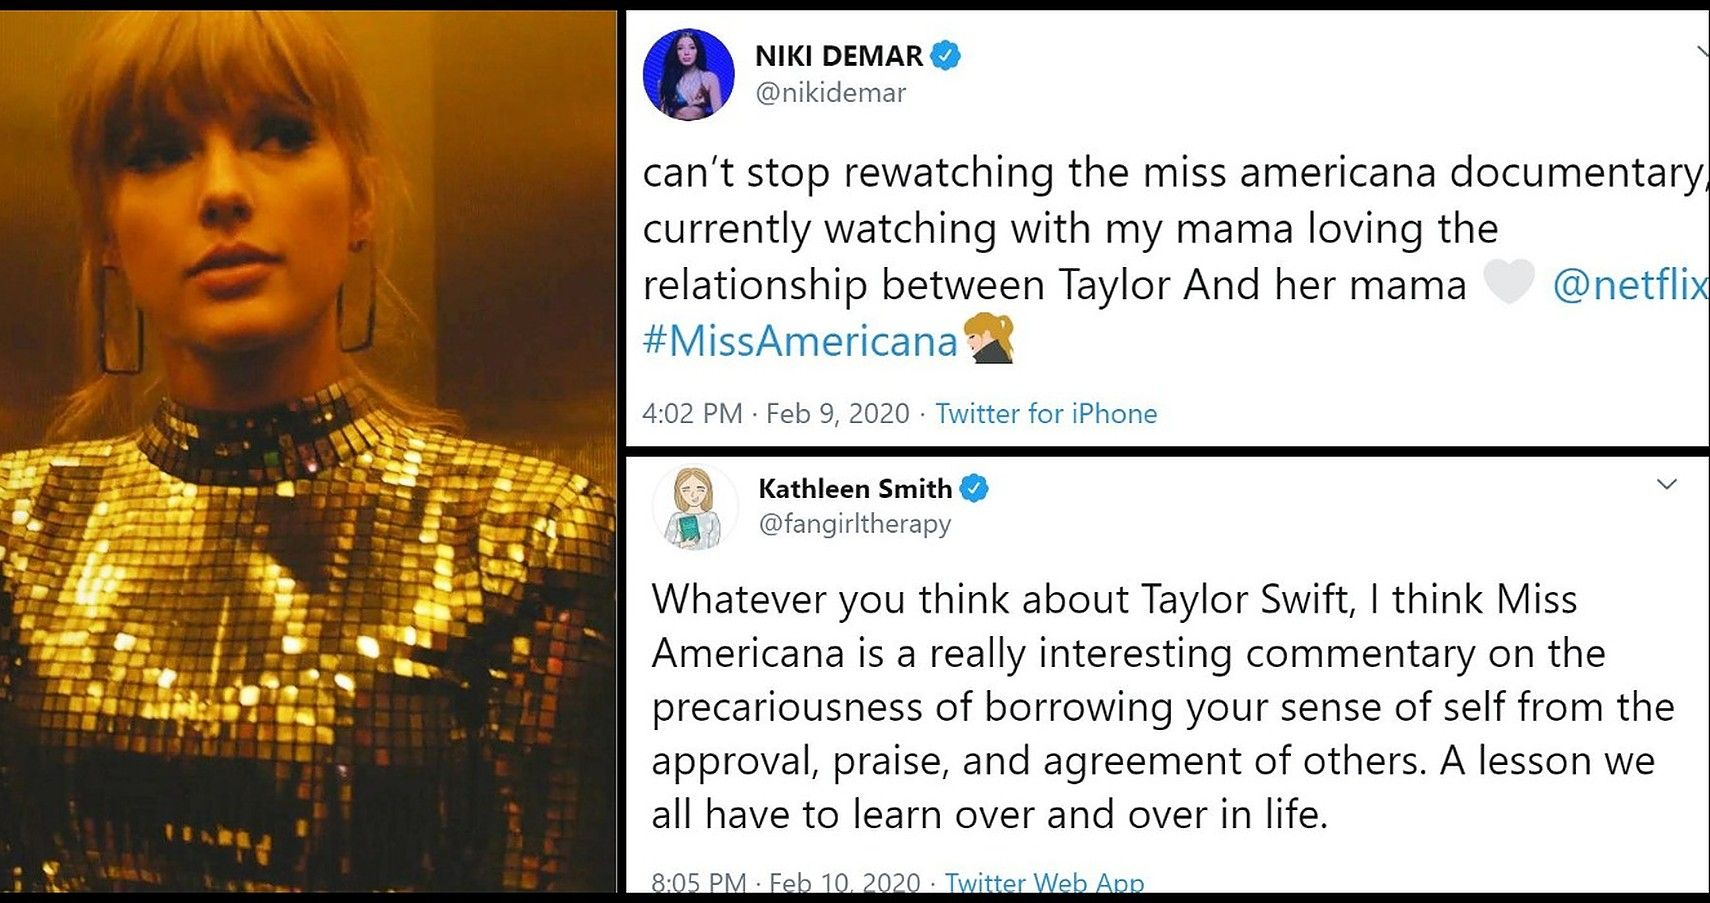 10 Heartfelt Twitter Reactions To Taylor Swift S Miss Americana See more ideas about taylor swift, swift, taylor swift twitter. 10 heartfelt twitter reactions to